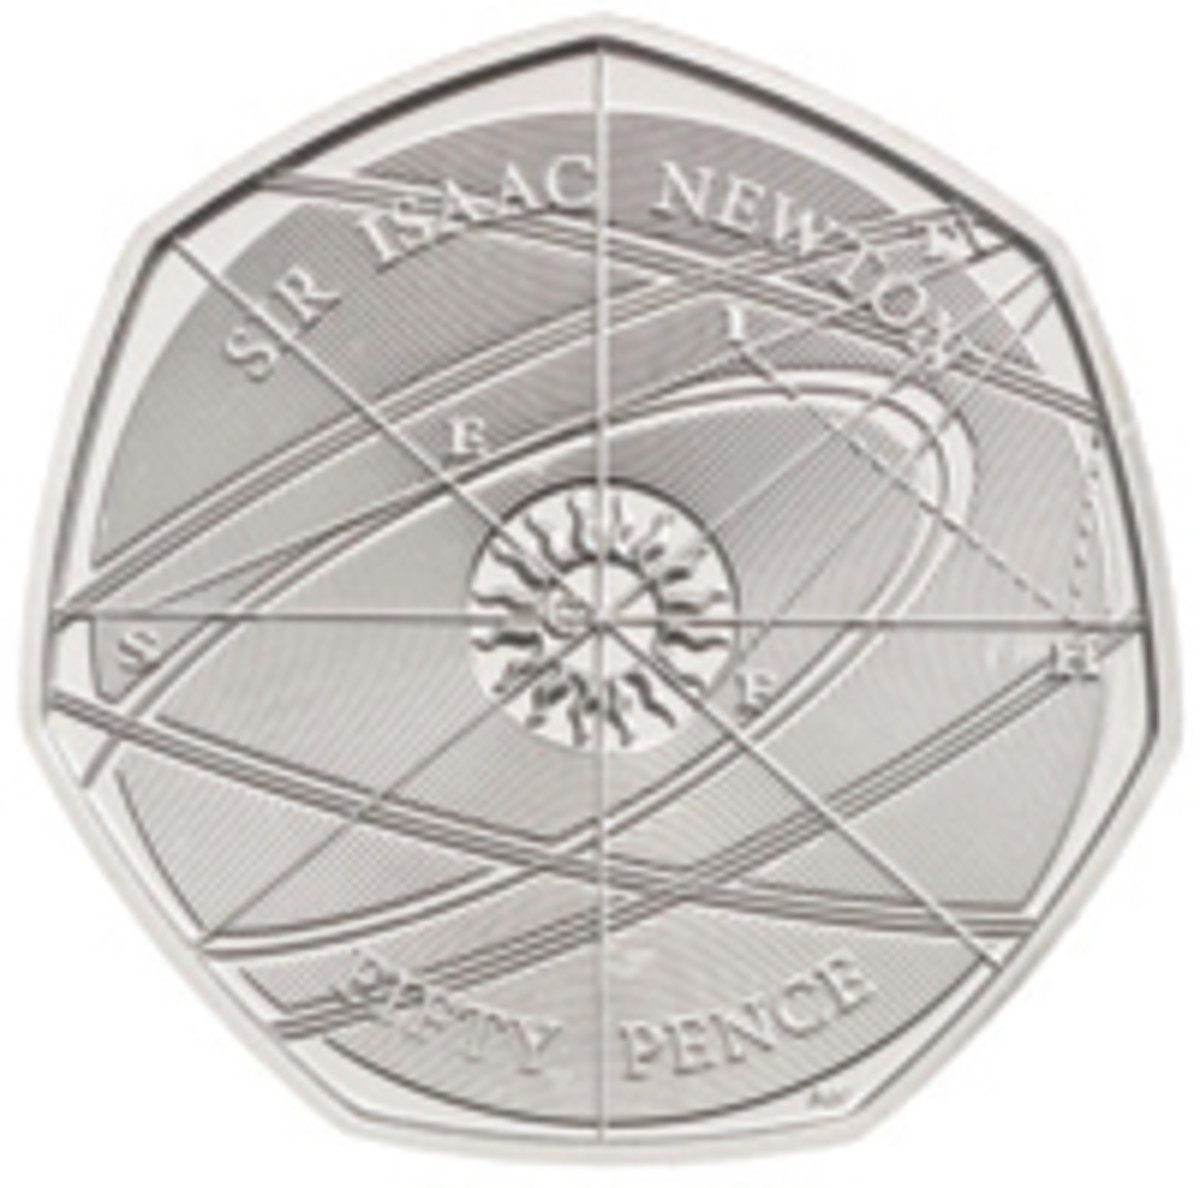 Only visitors to the British Royal Mint can acquire a 2018 Sir Isaac Newton British 50-pence coin.